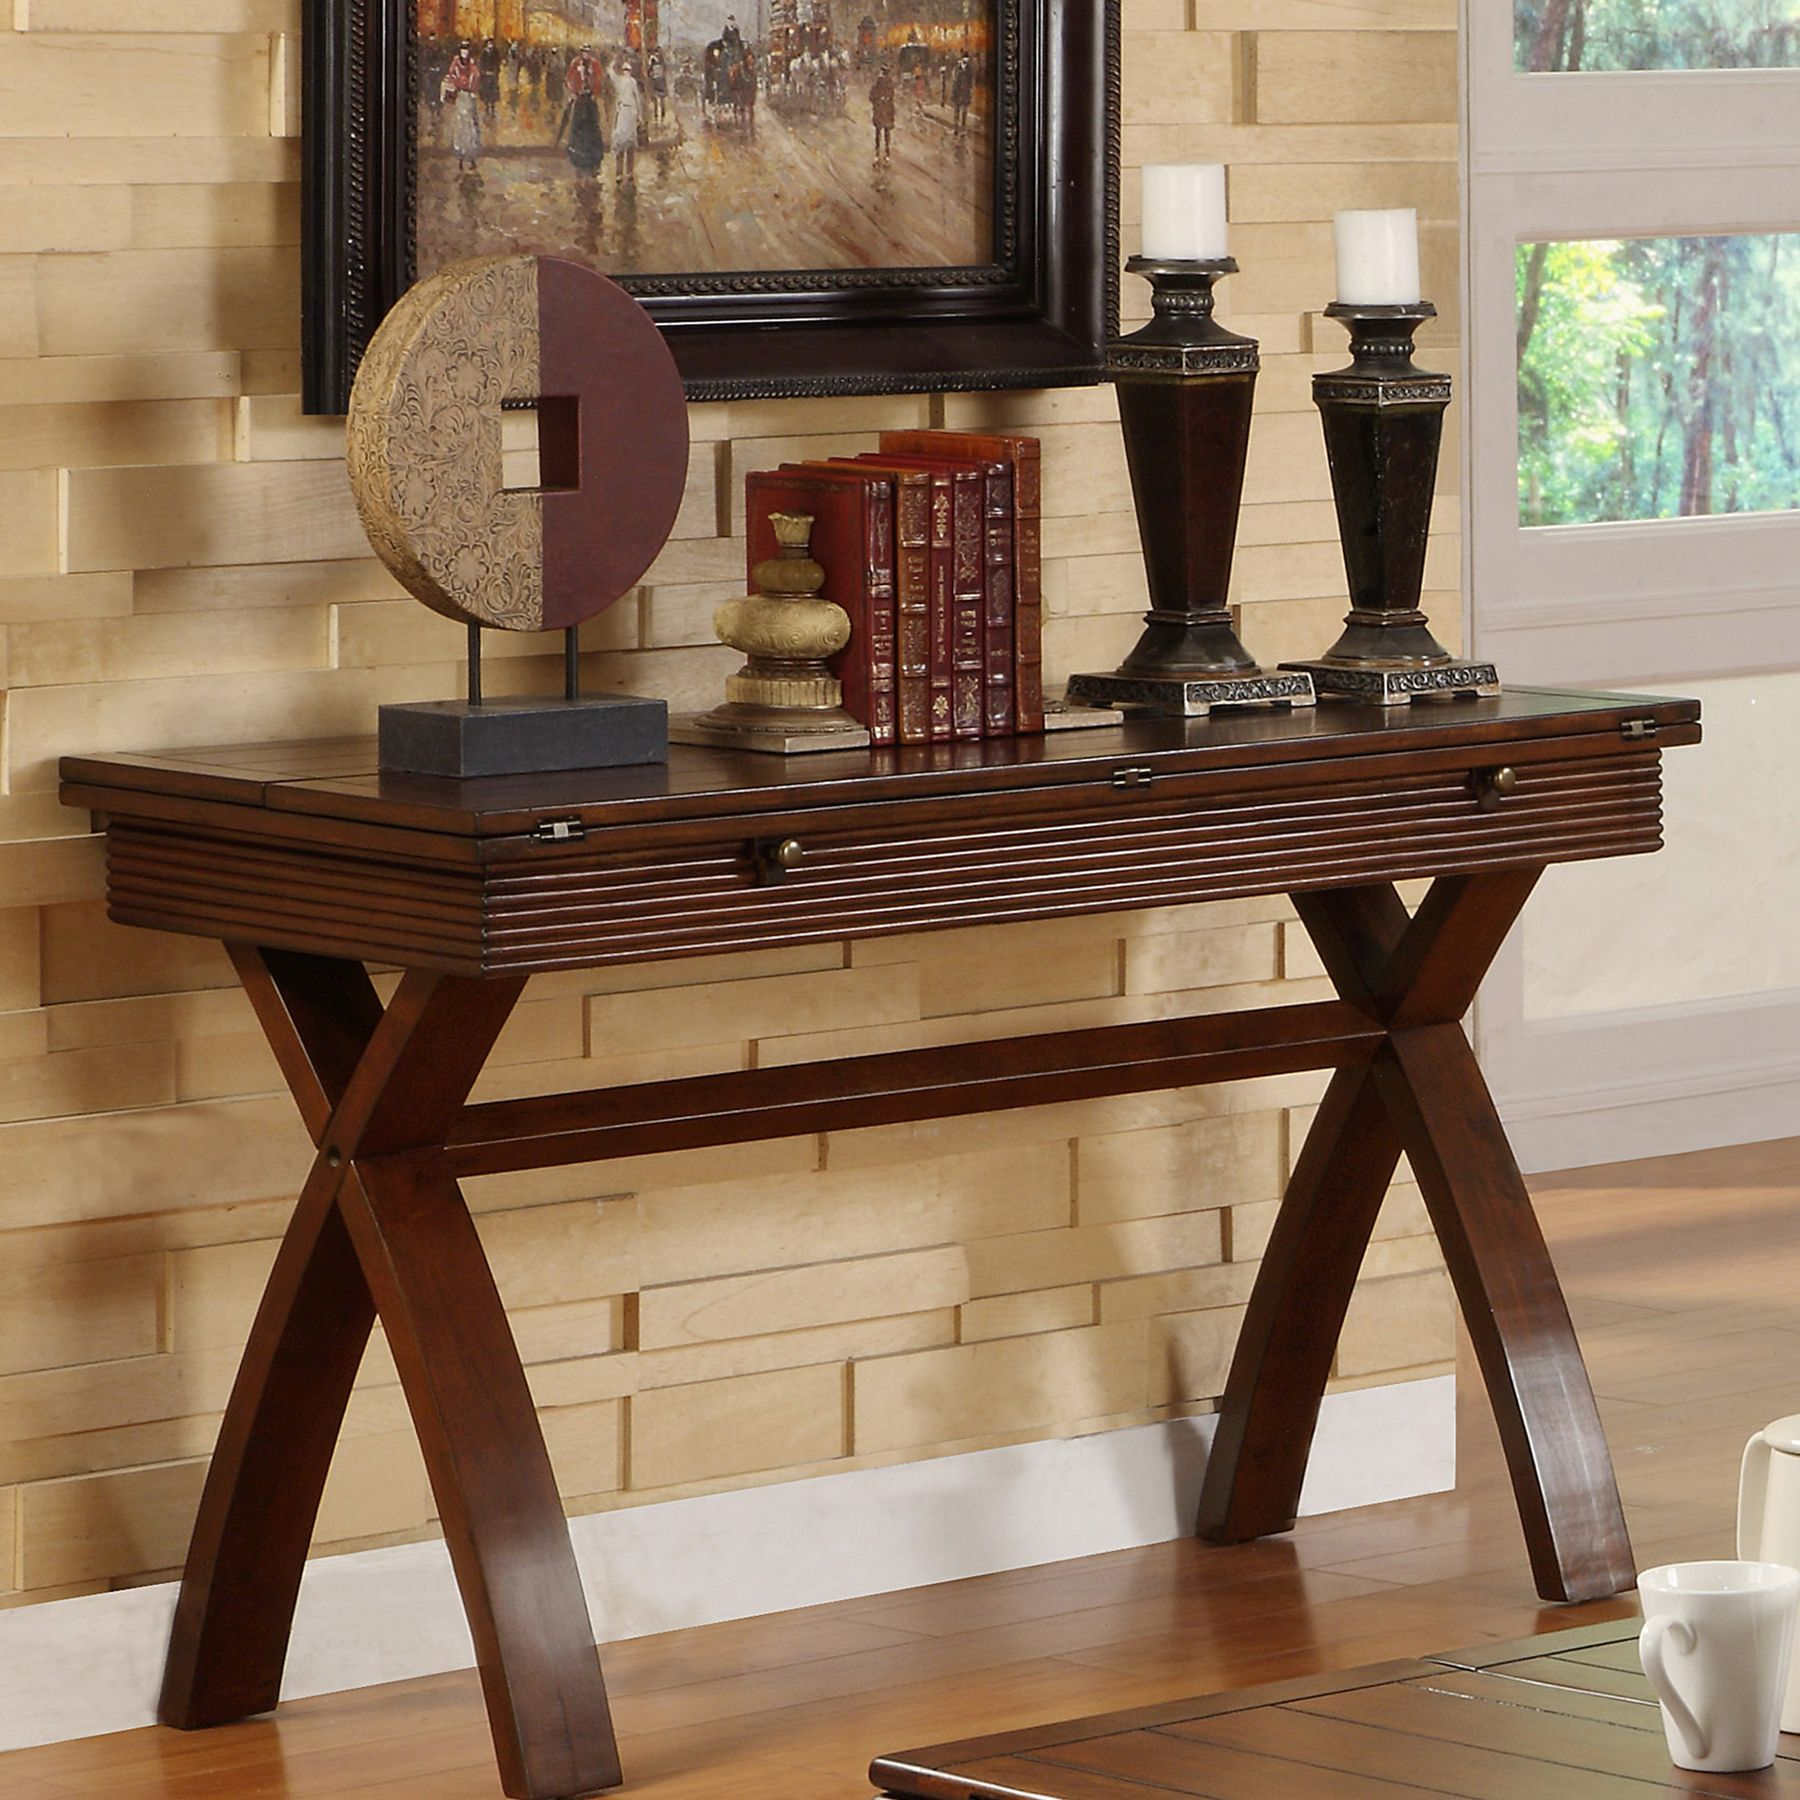 This expandable wood sofa table by naleigh can easily extend to furniture of america naleigh expandable sofa table overstock shopping great deals on furniture of america coffee sofa end tables geotapseo Images